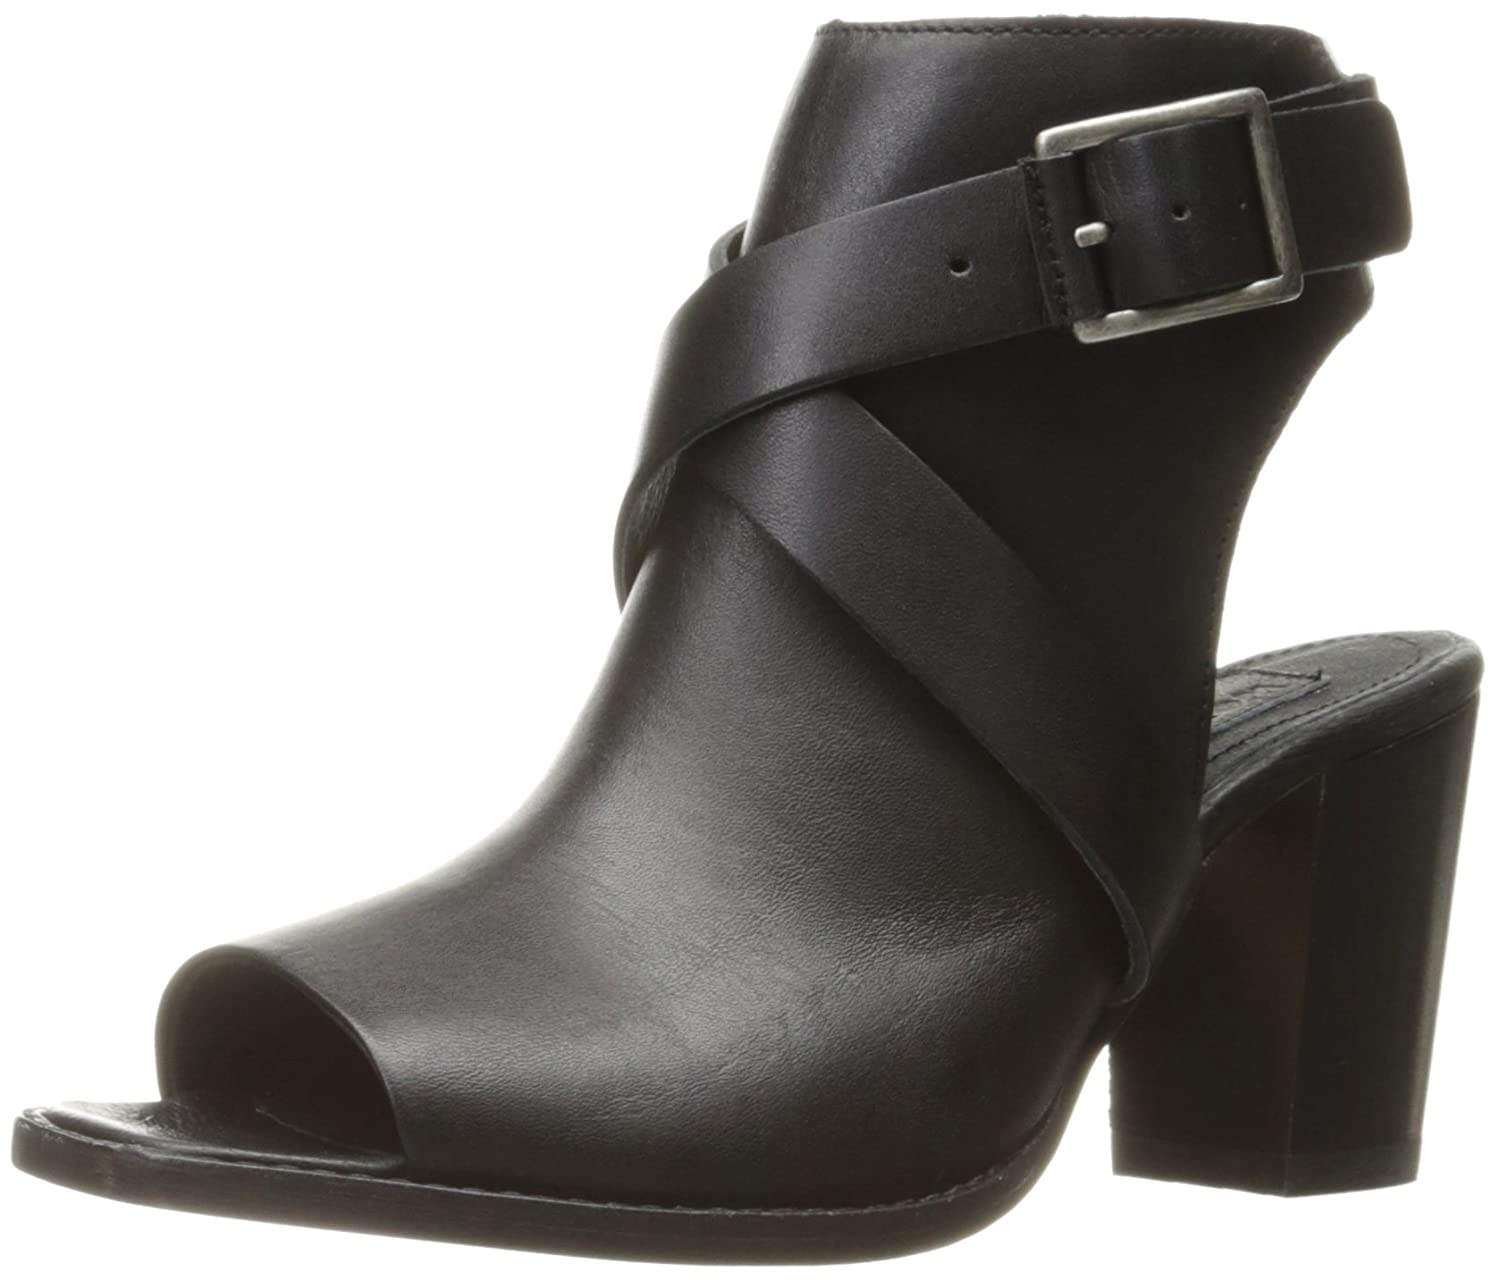 Wolverine 1883 by Women's Piper Open-Toe Boot B01IAOFEG2 8.5 B(M) US|Black Leather